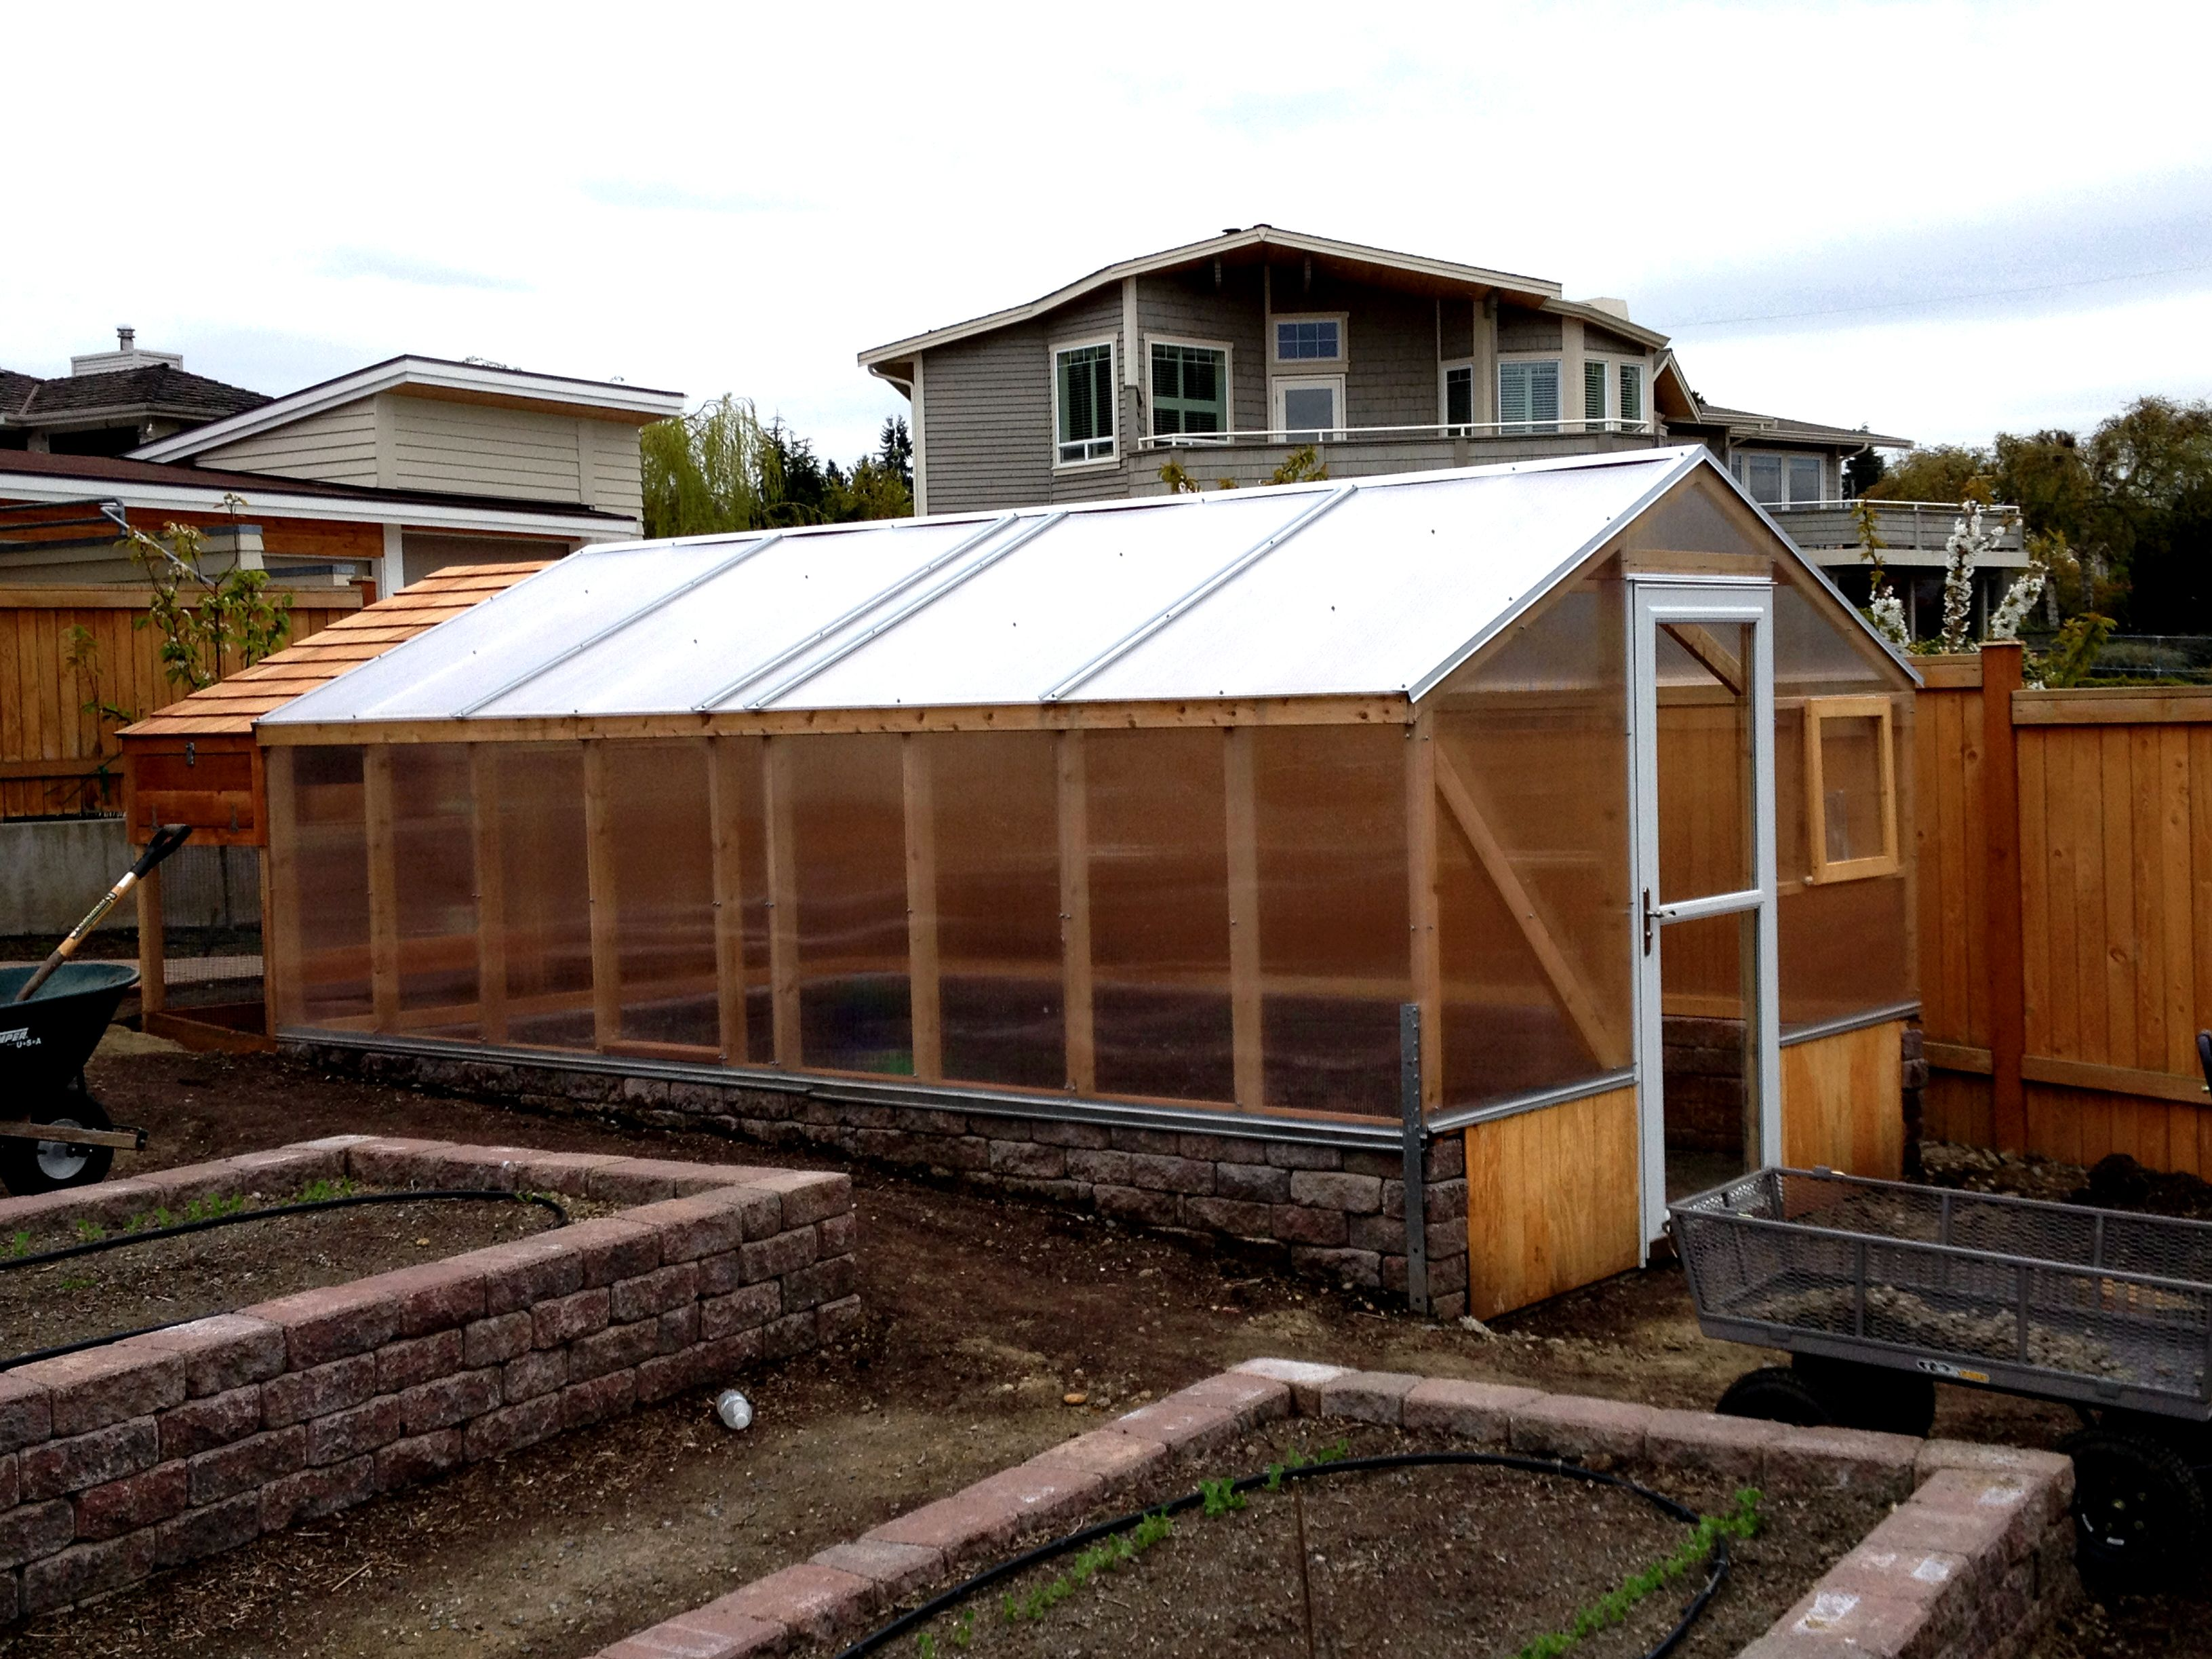 Chicken house and green house construction discourage burrowing predators from